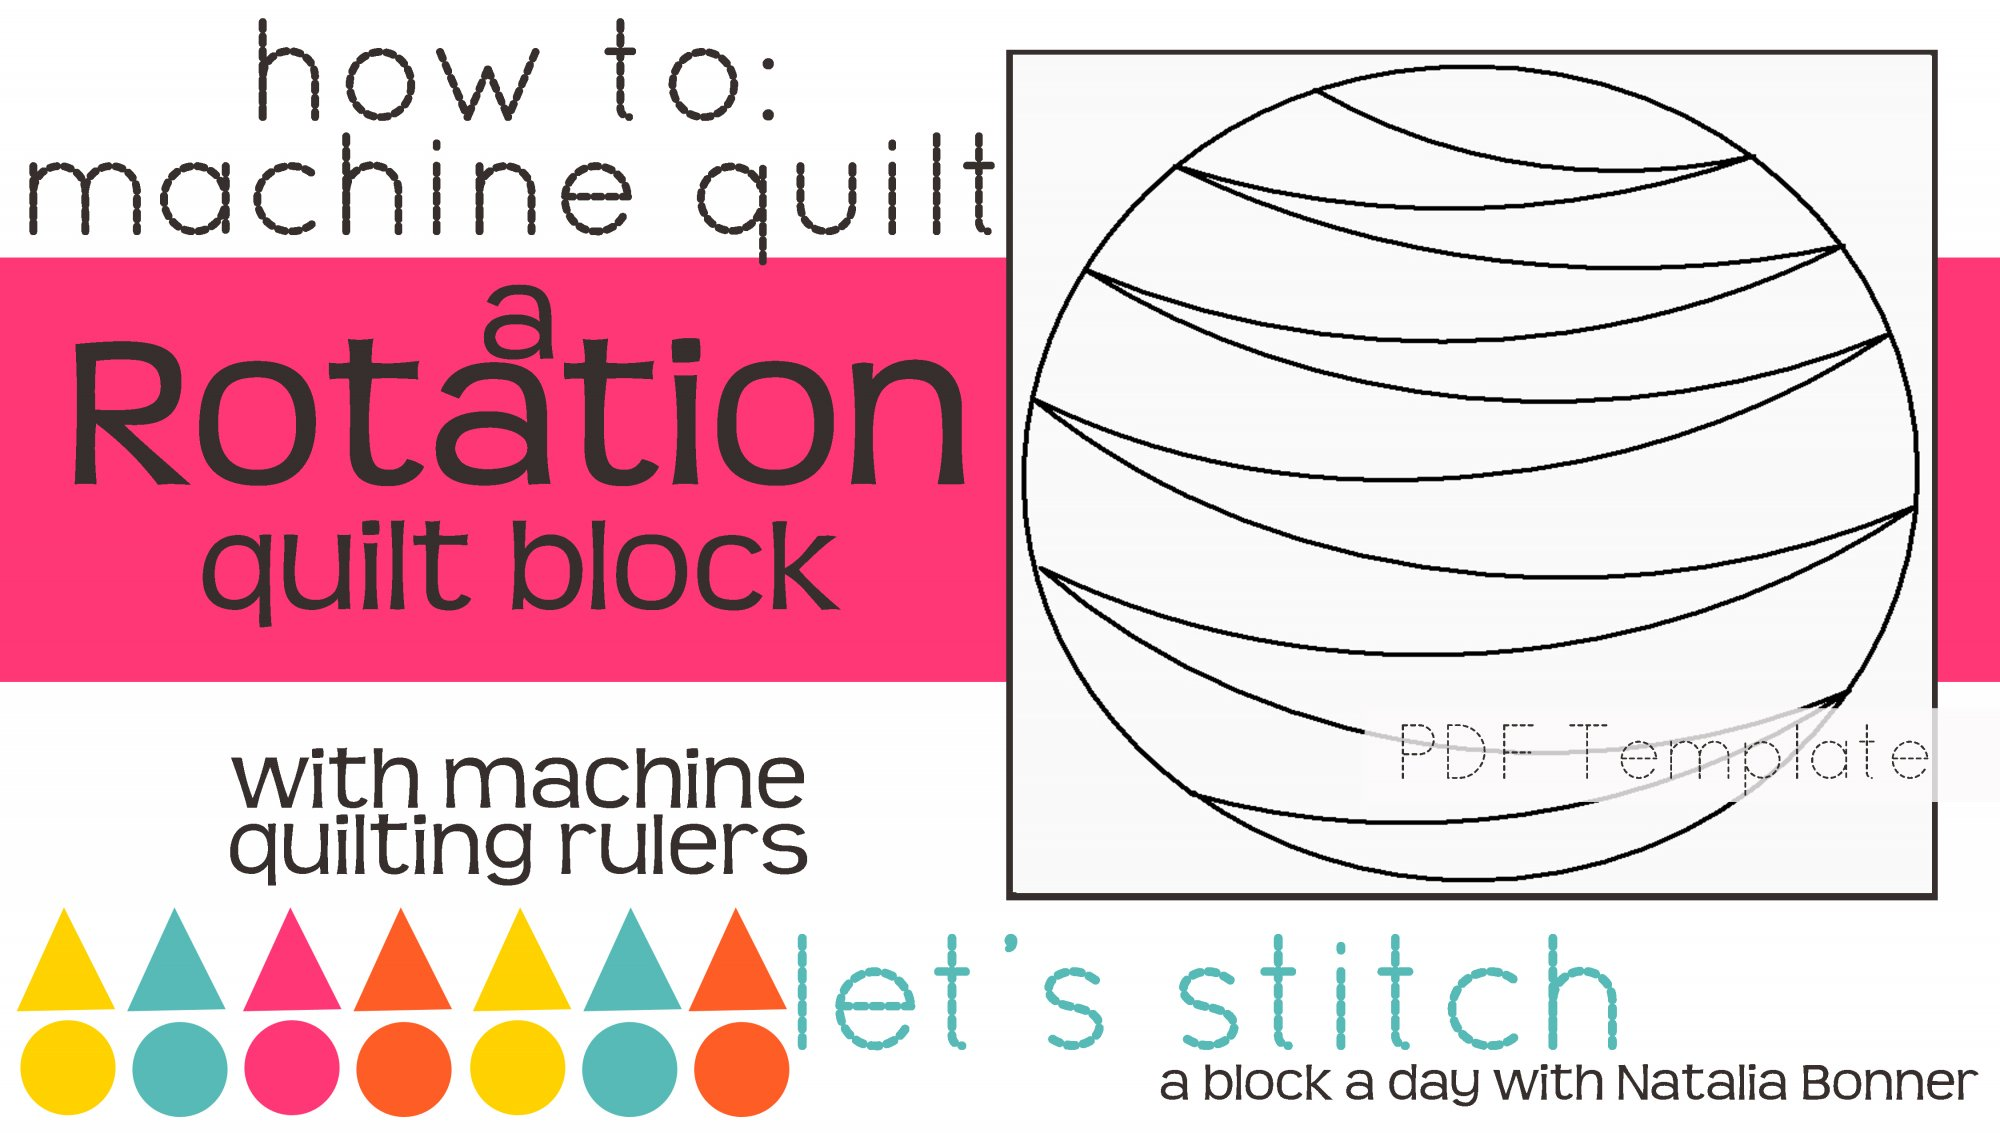 Let's Stitch - A Block a Day With Natalia Bonner - PDF - Rotation